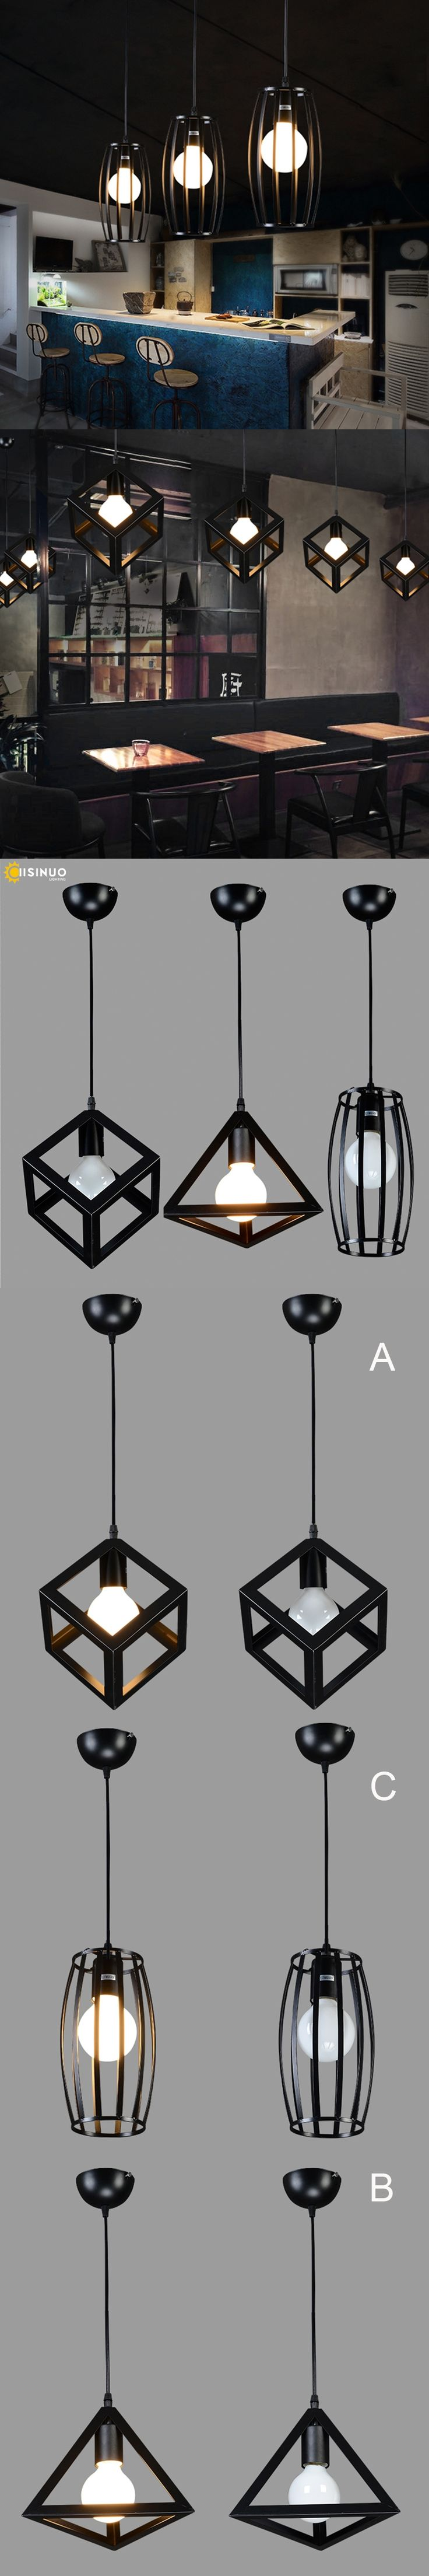 Vintage Modern chandelier E27 lamp 220v for decor Iron Loft industrial rope pendant American Village Style suspension luminaire